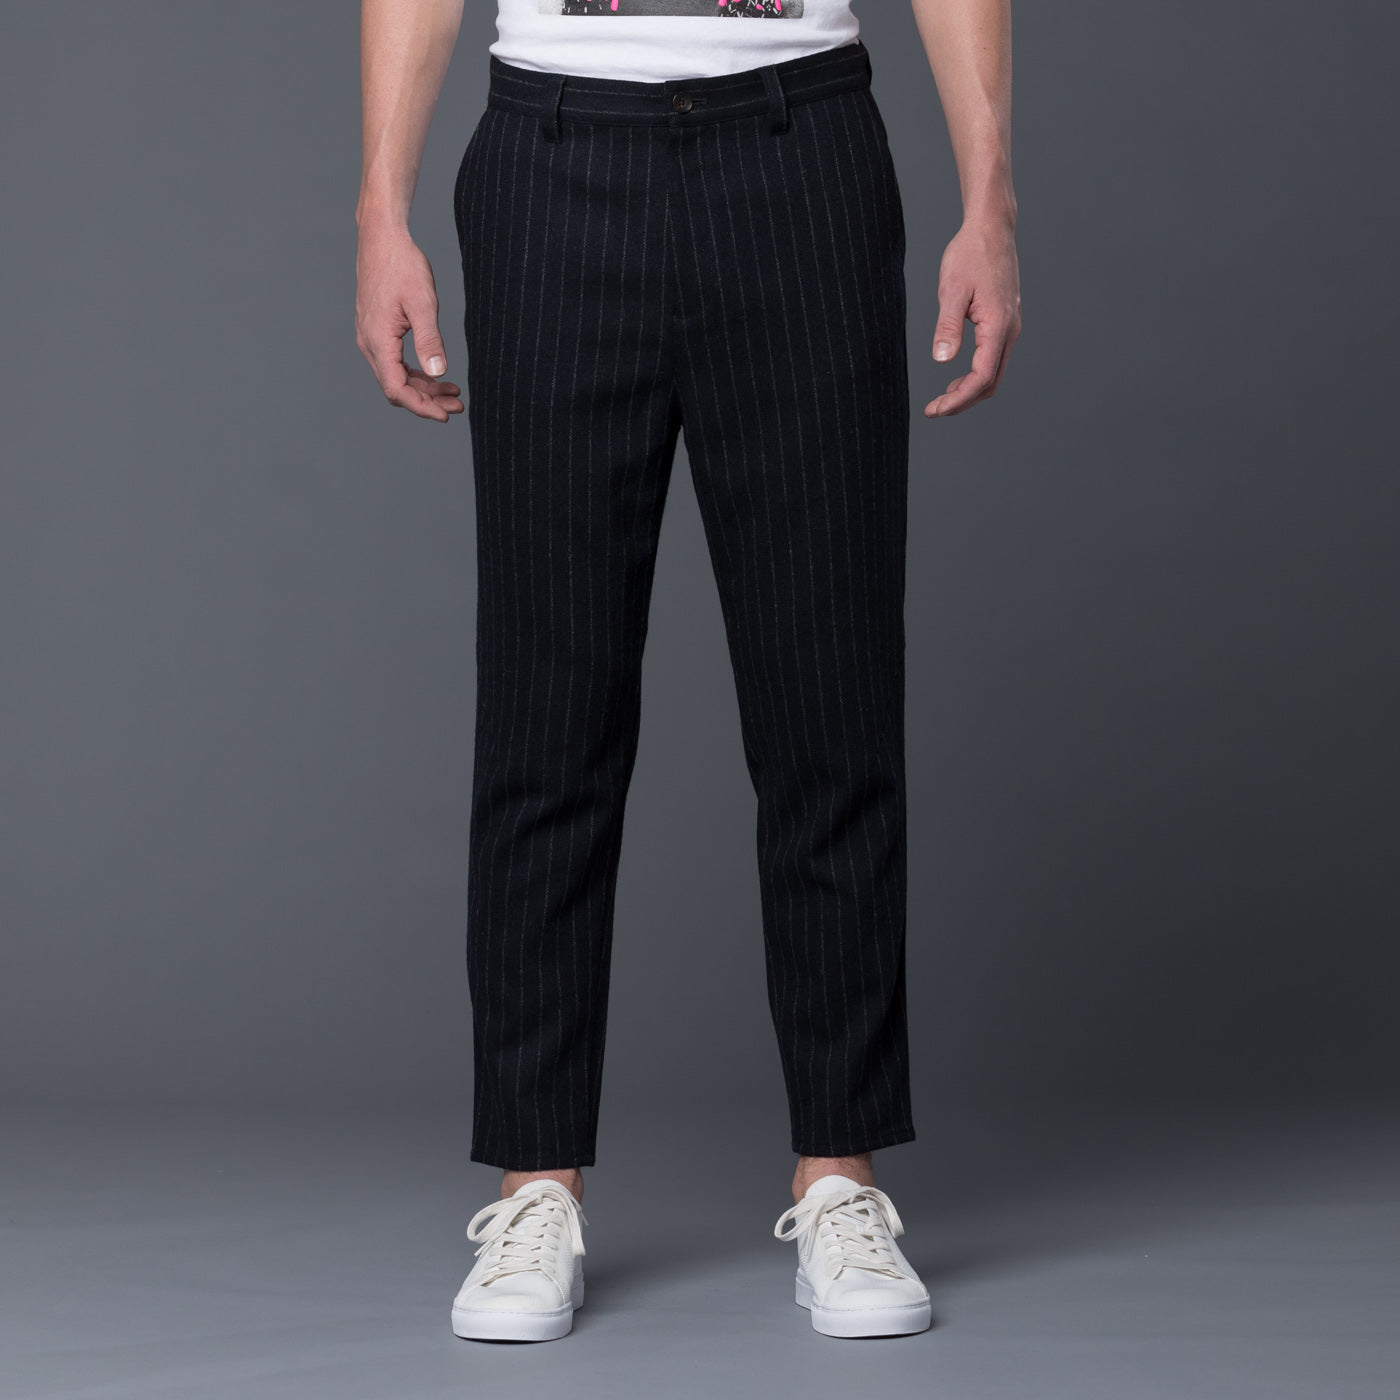 Gustav Von Aschenbach Striped Tweed Trousers